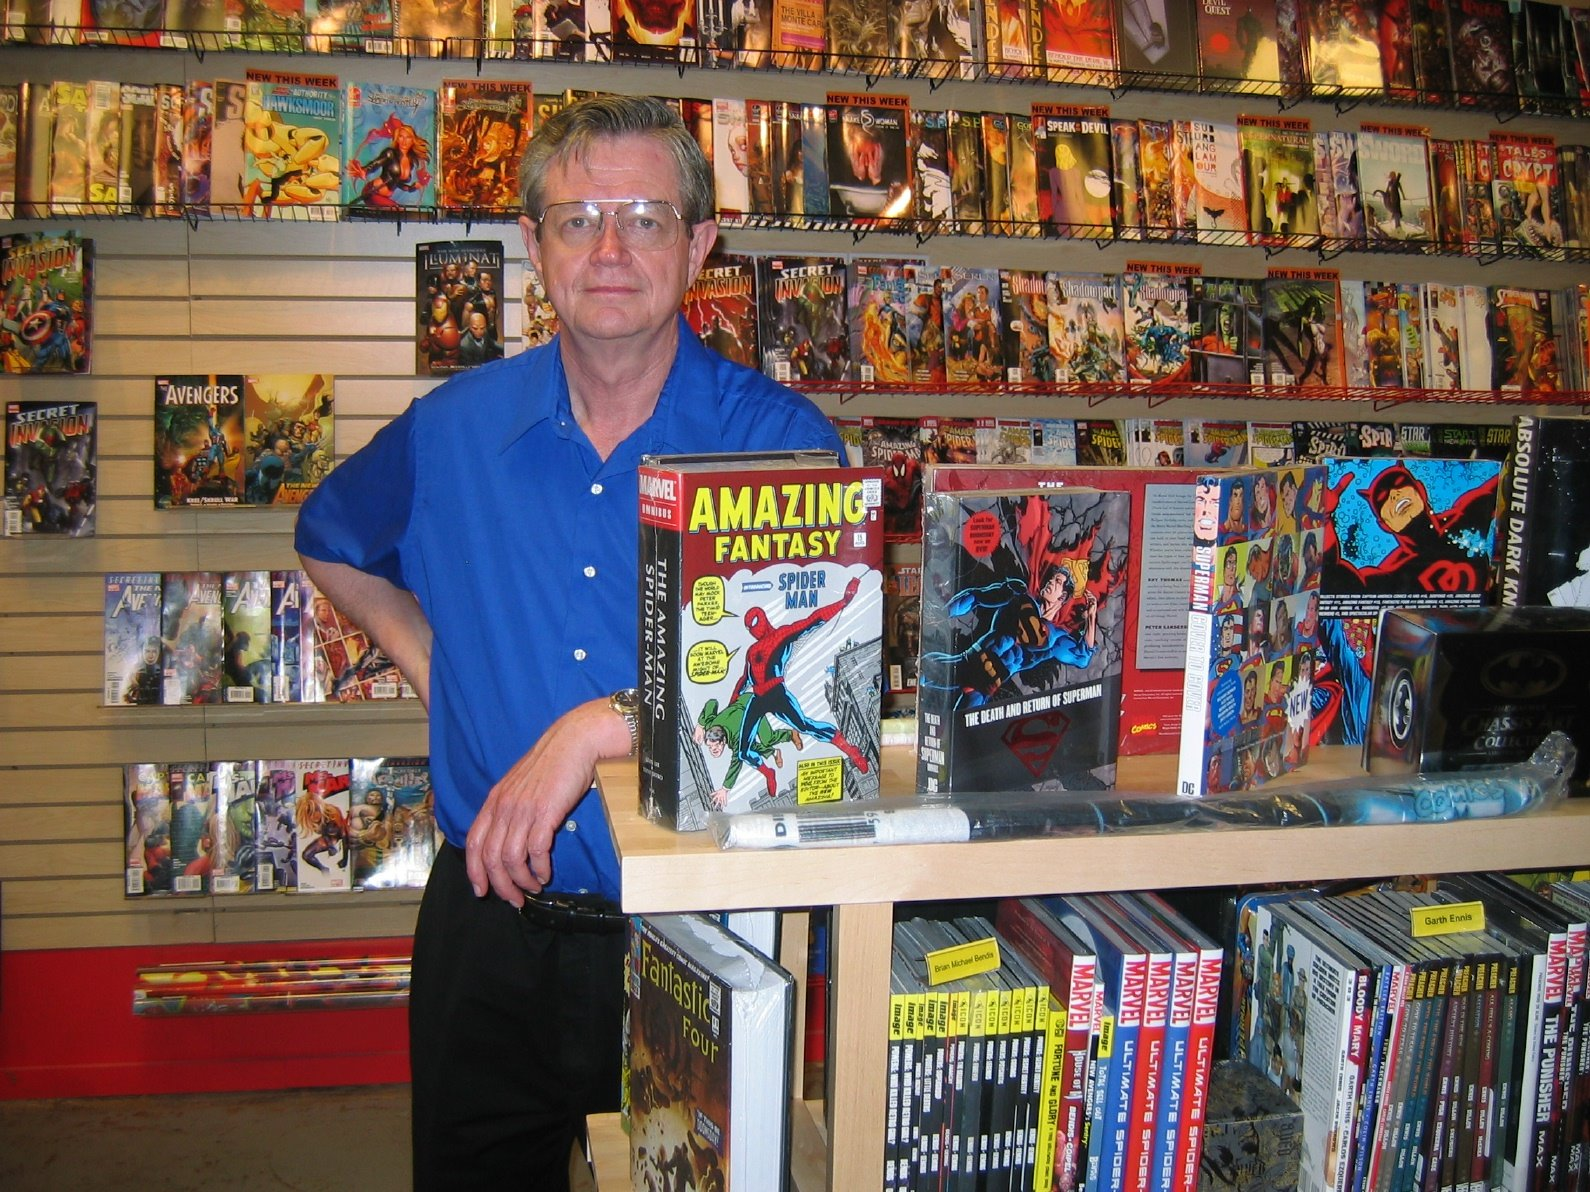 Buddy Saunders: DC COMICS HAS LEFT COMIC STORES OUT